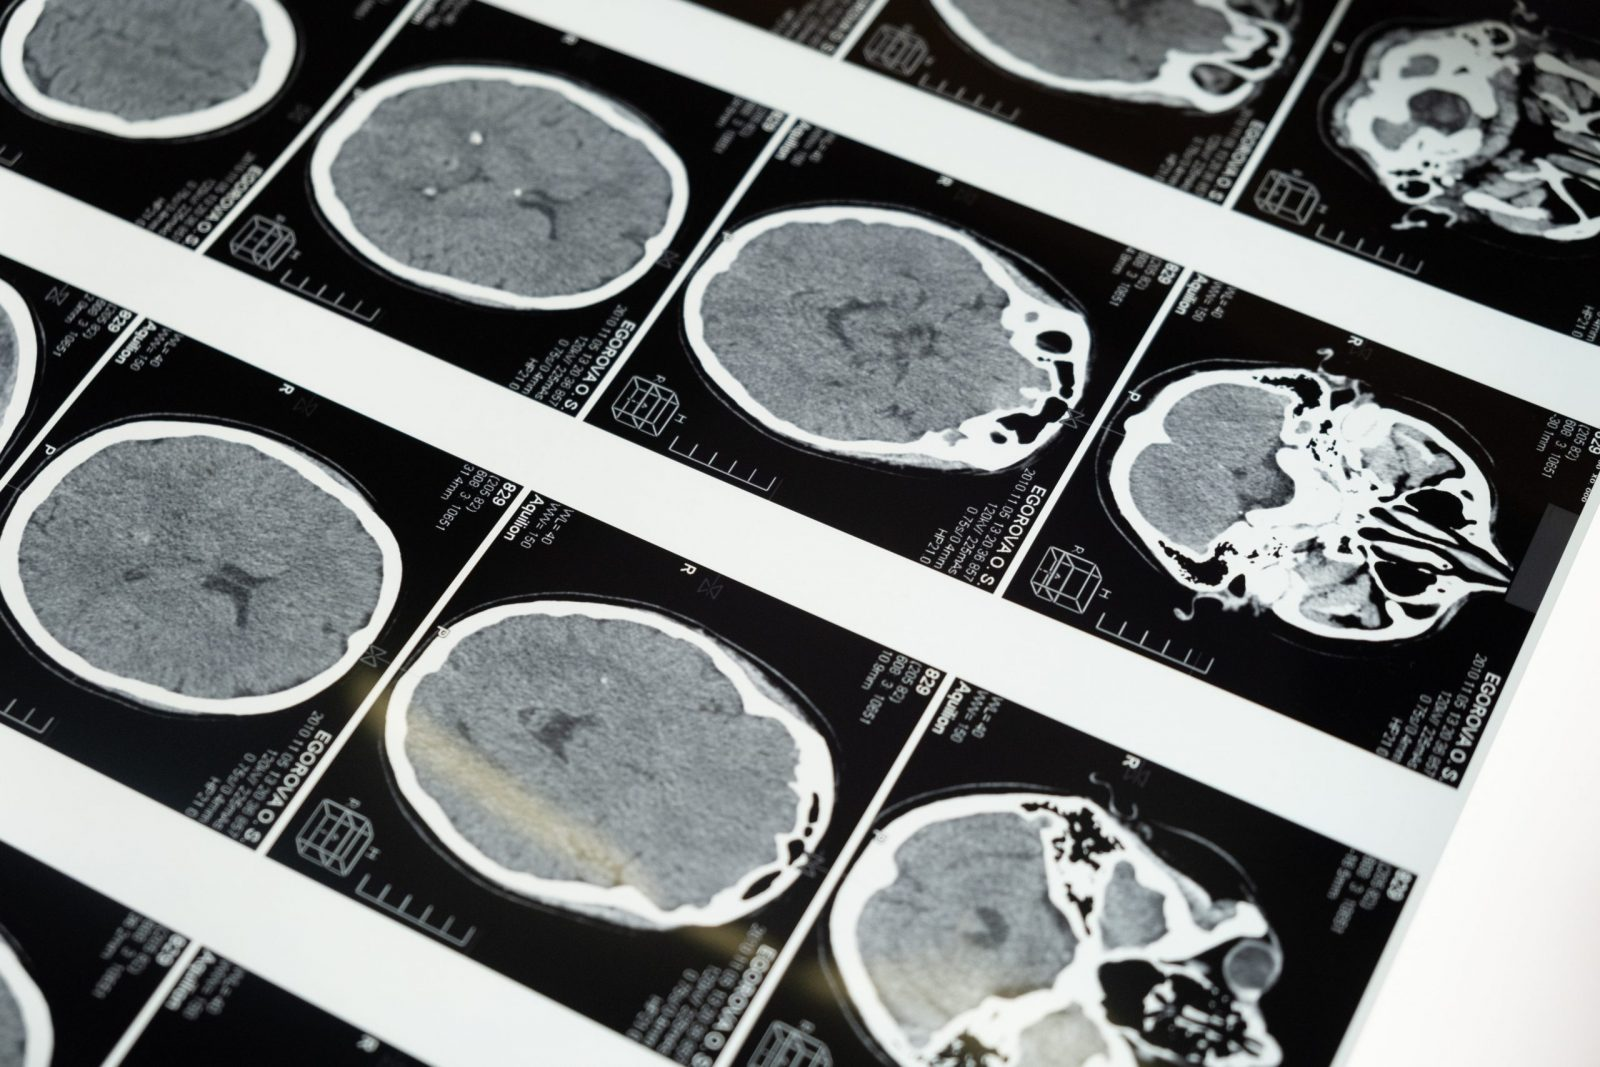 Brain scan from tbi given to brain injury lawyer